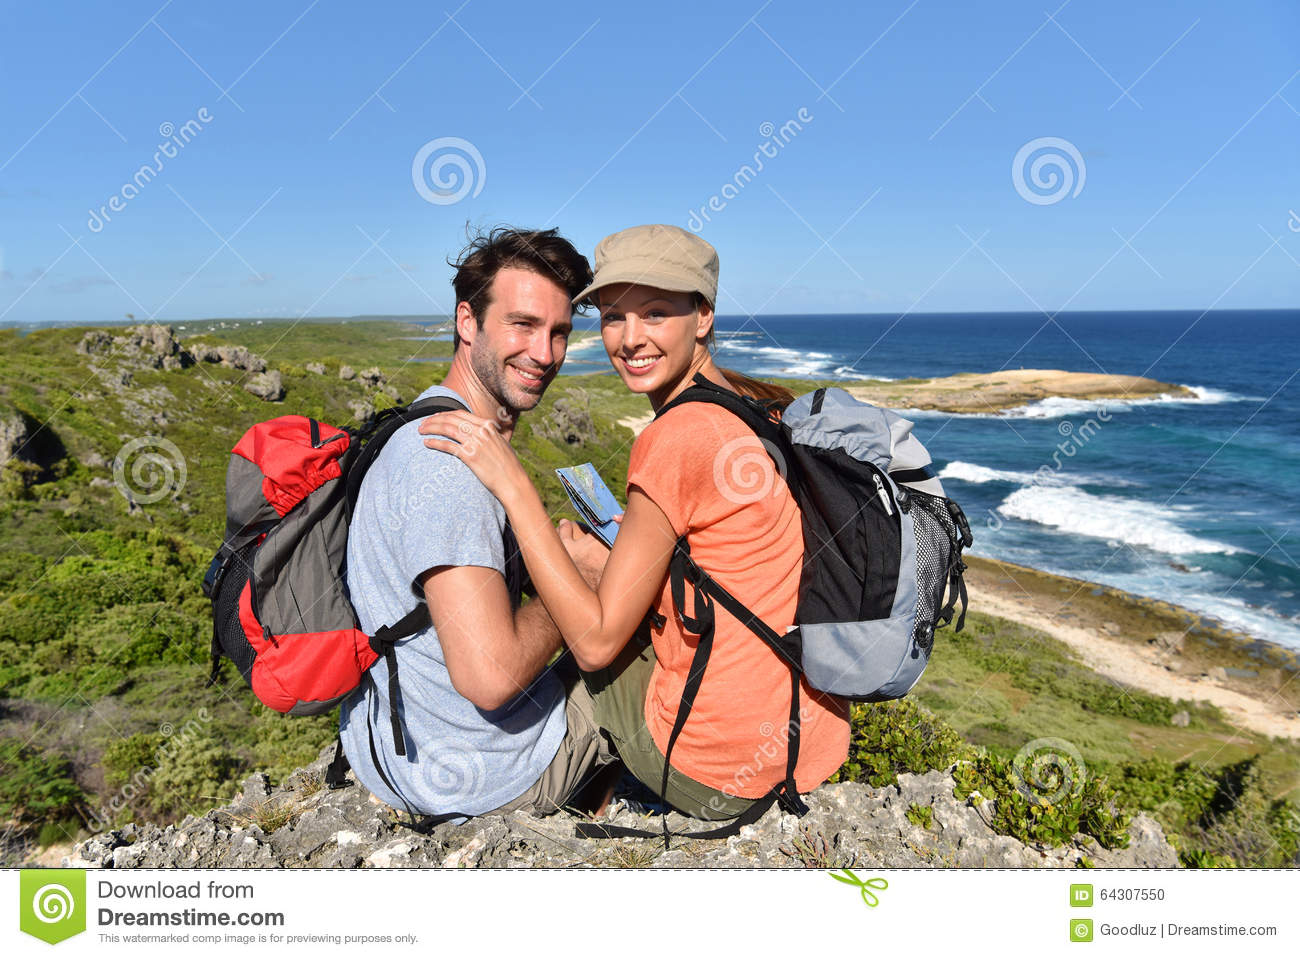 Hikers on trip enjoying the view on islands